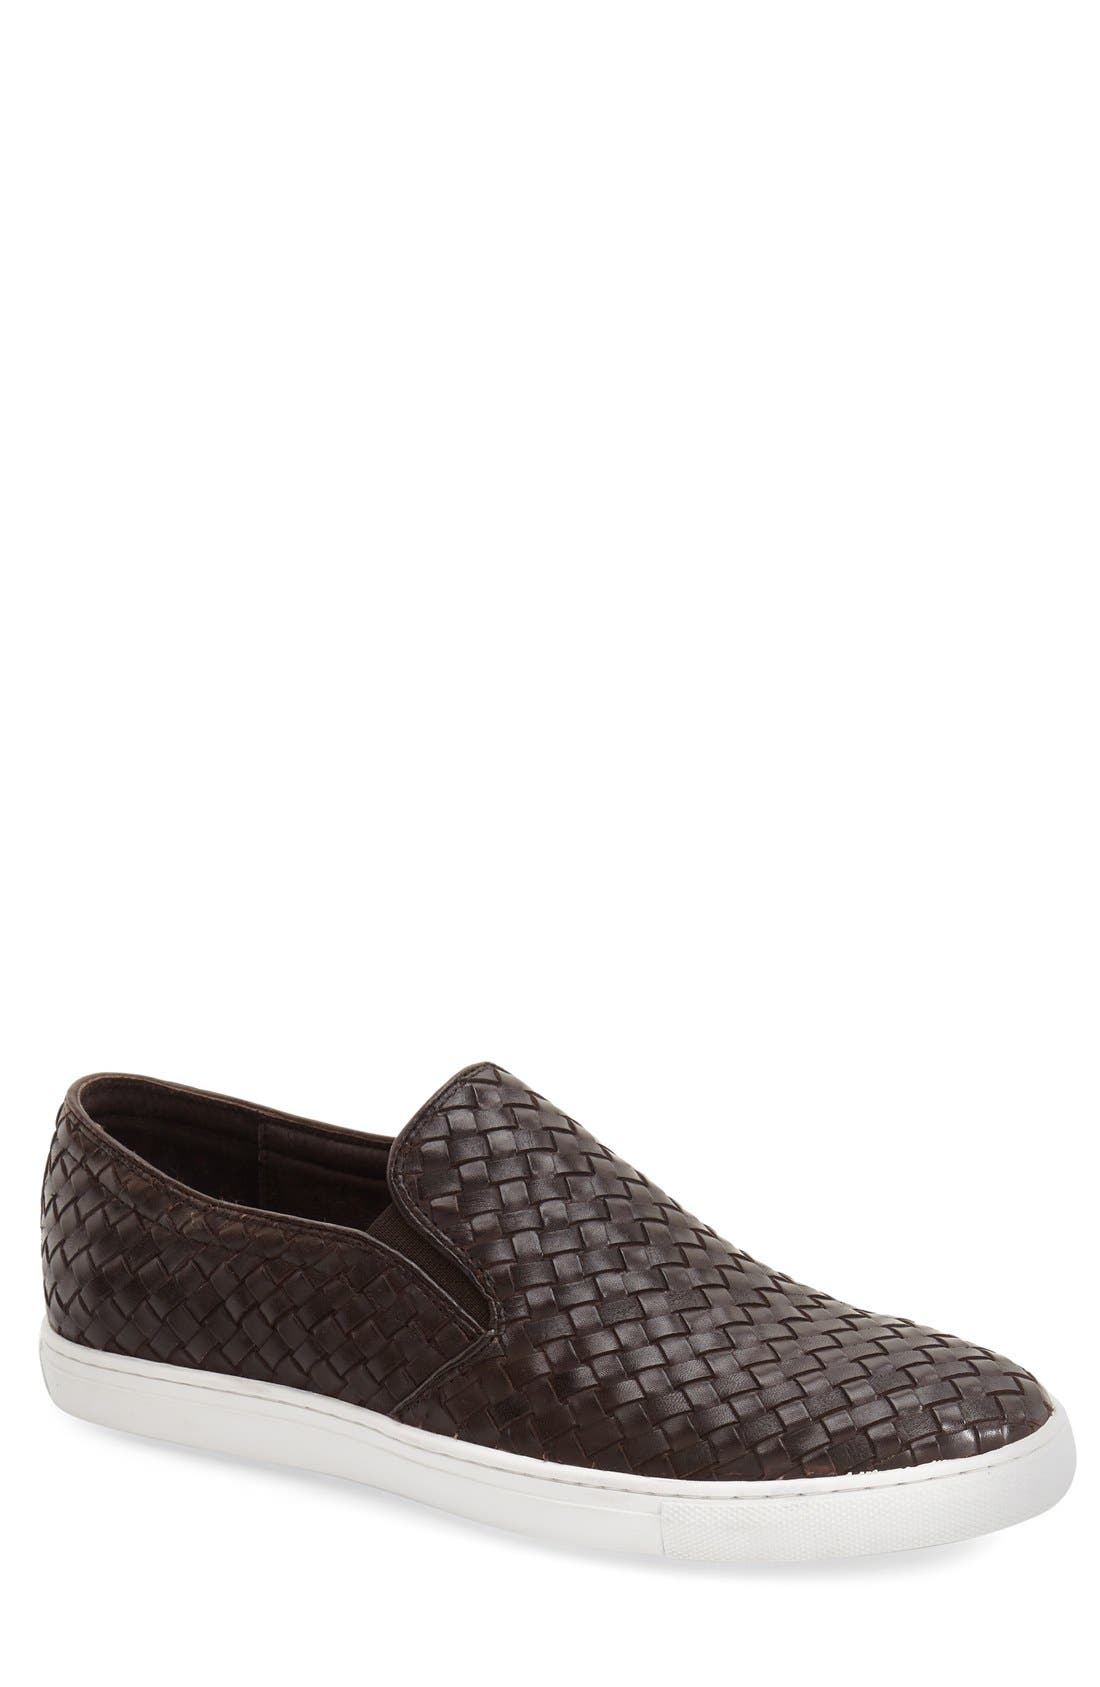 Main Image - Zanzara 'Buzz' Slip-On Sneaker (Men)